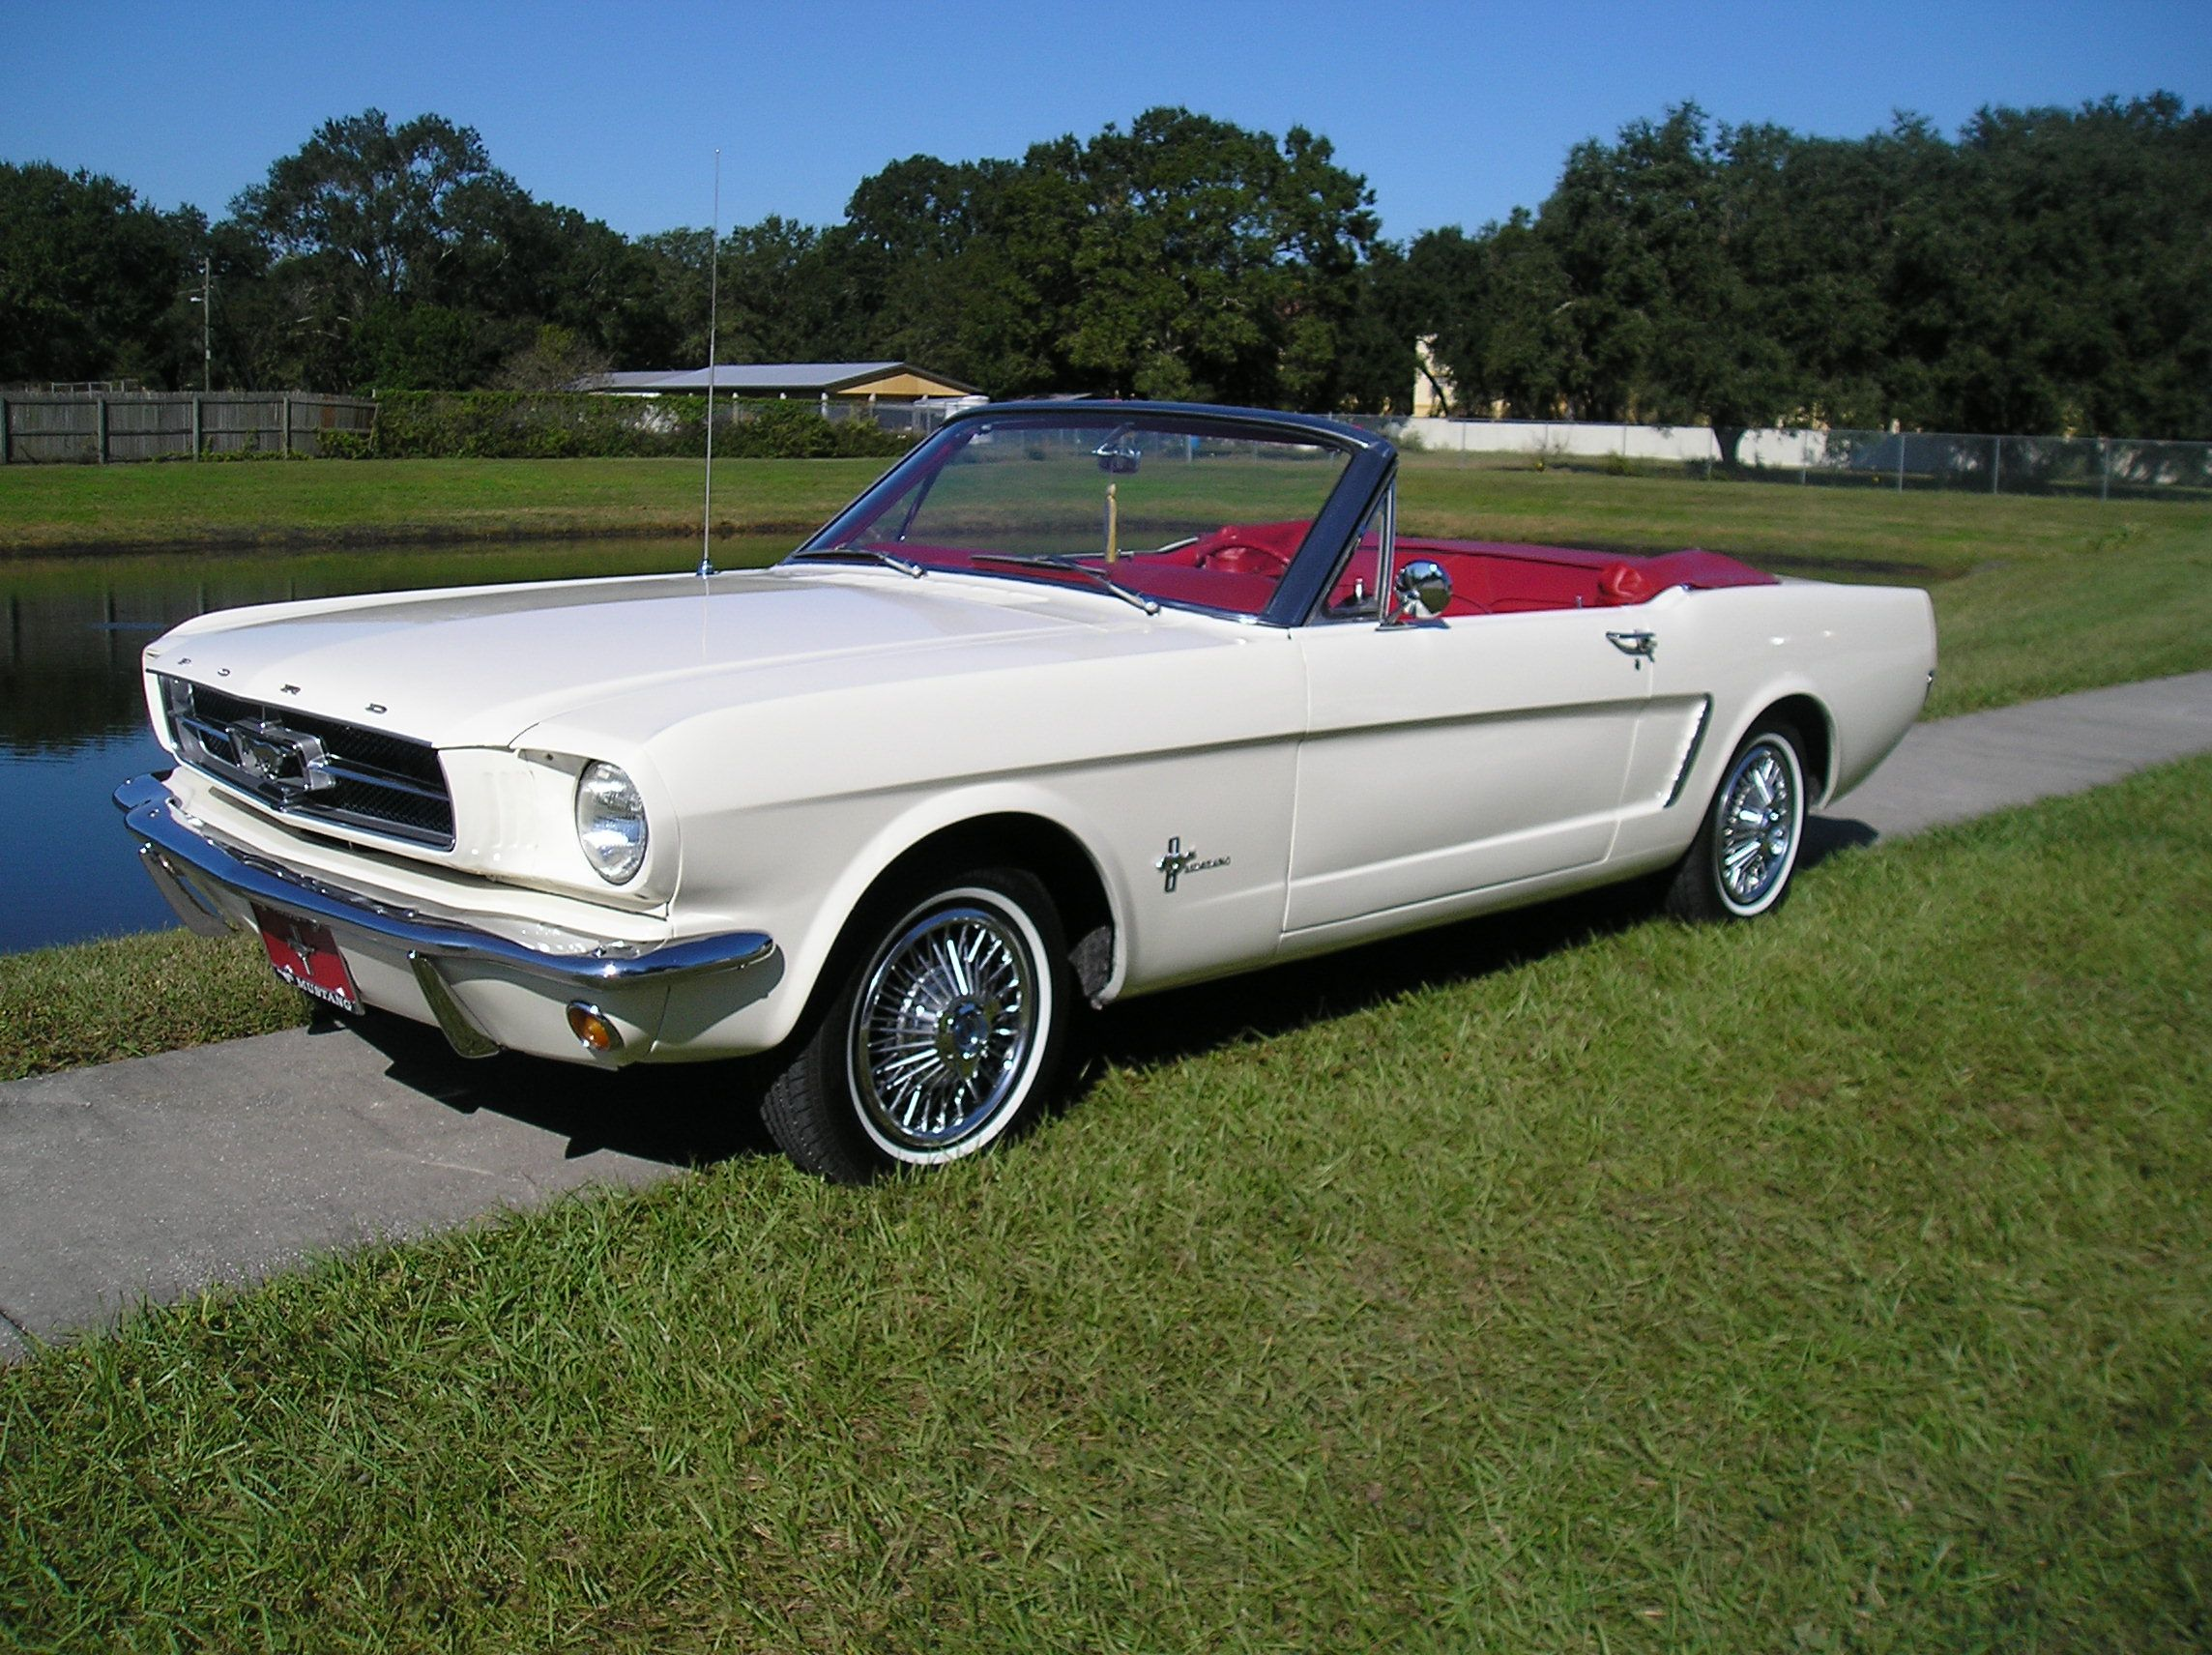 1965 ford mustang convertible diggin the white w red interior